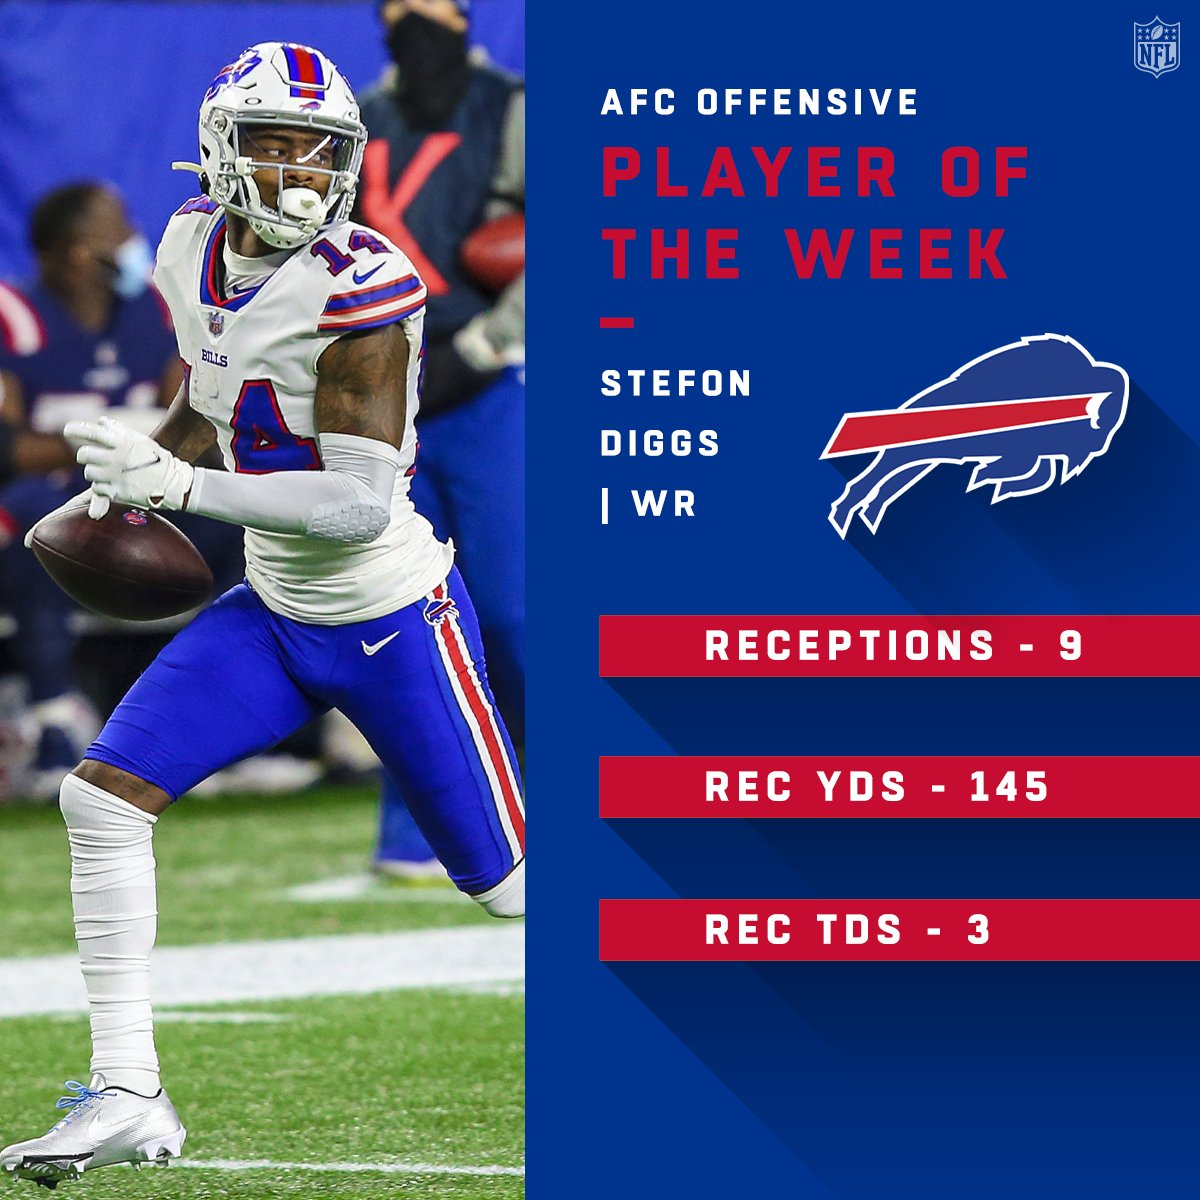 First Bills WR to earn AFC Offensive Player of the Week since Andre Reed in 1994. 👏  #GoBills | #BillsMafia